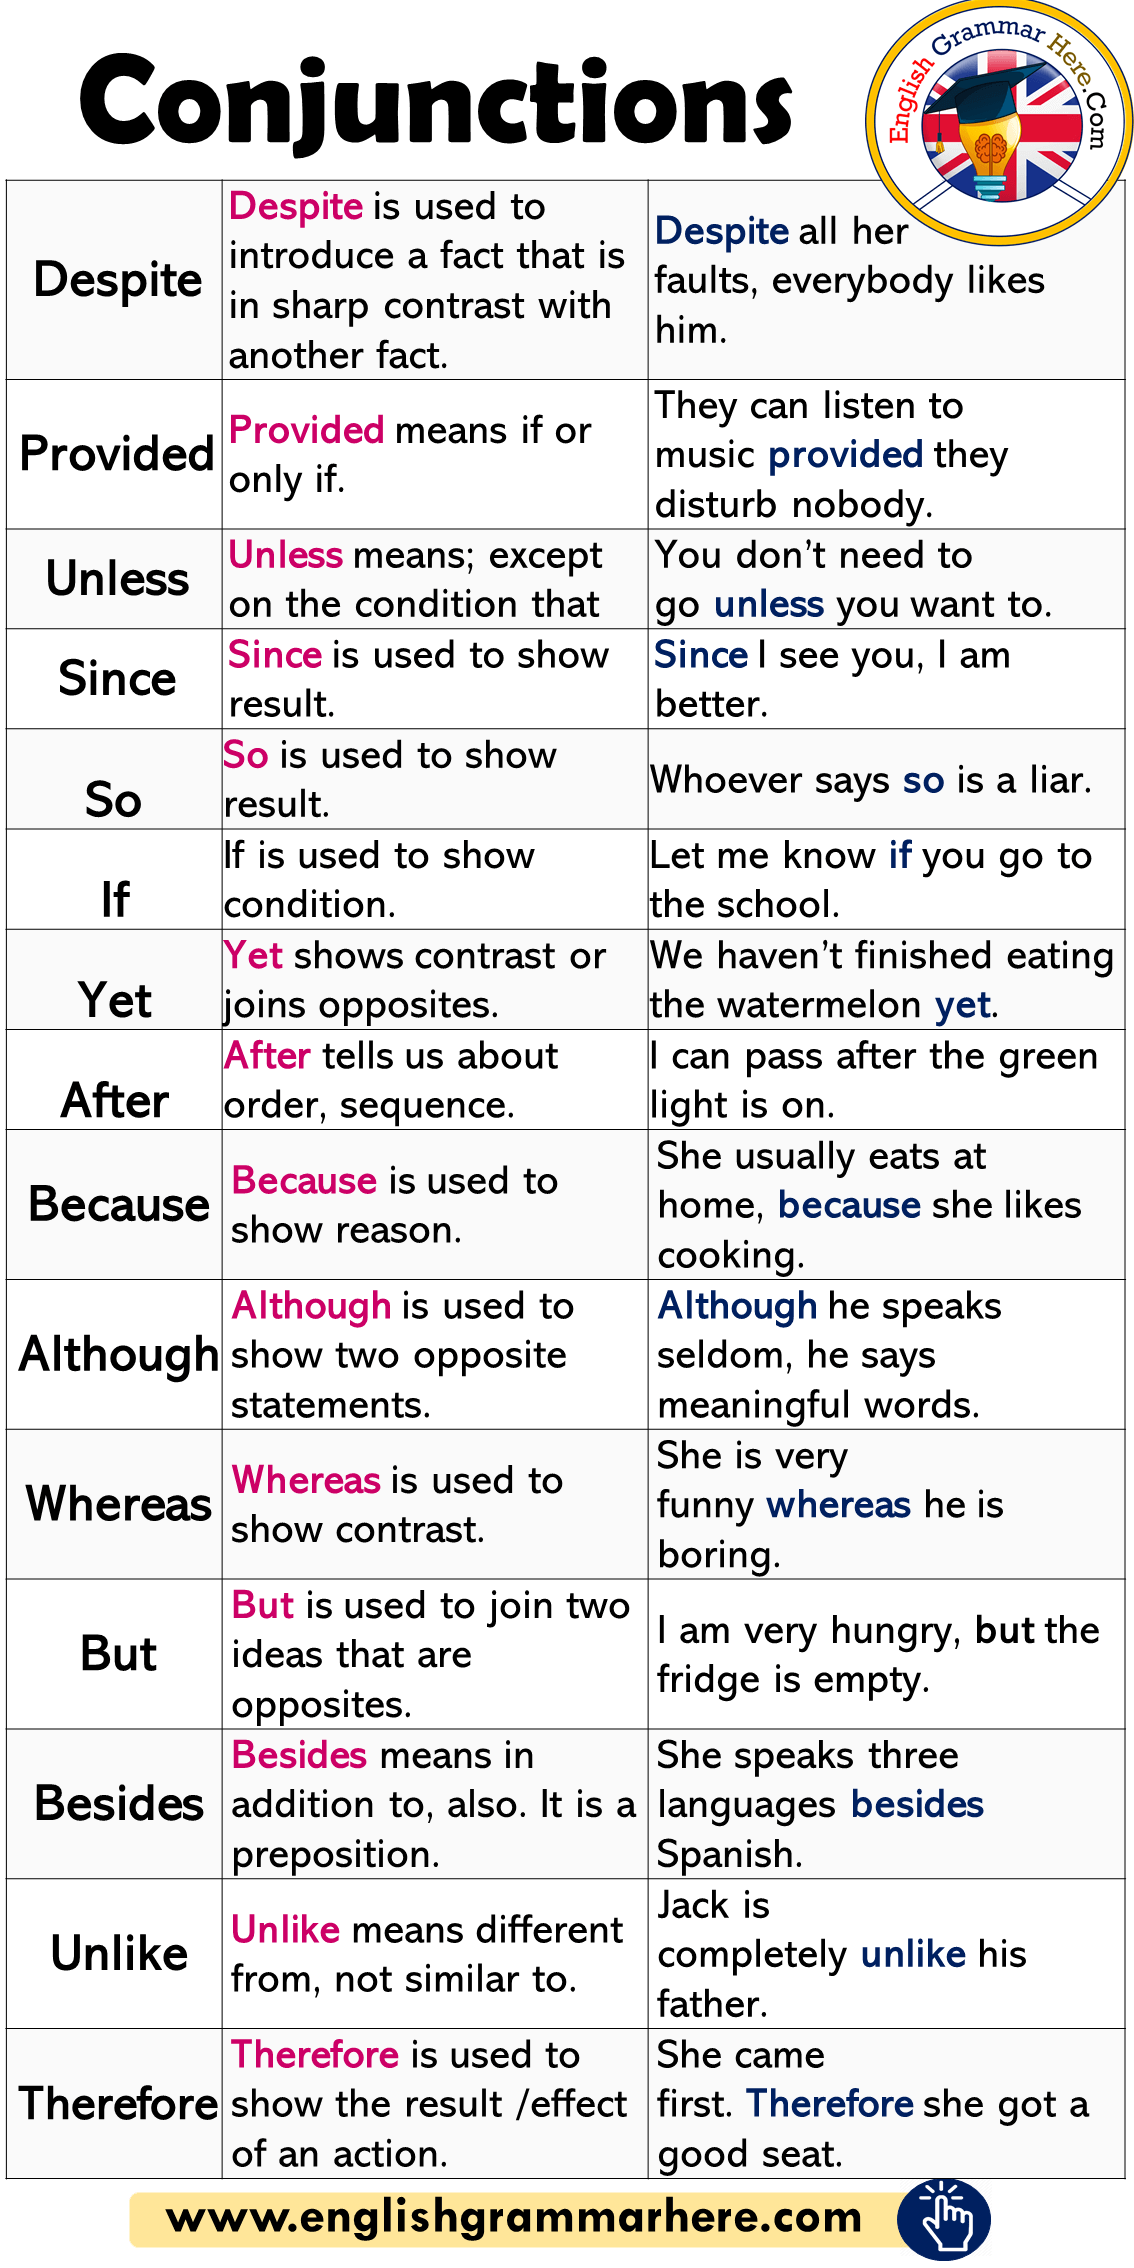 Conjunctions Definitions And Example Sentences In English